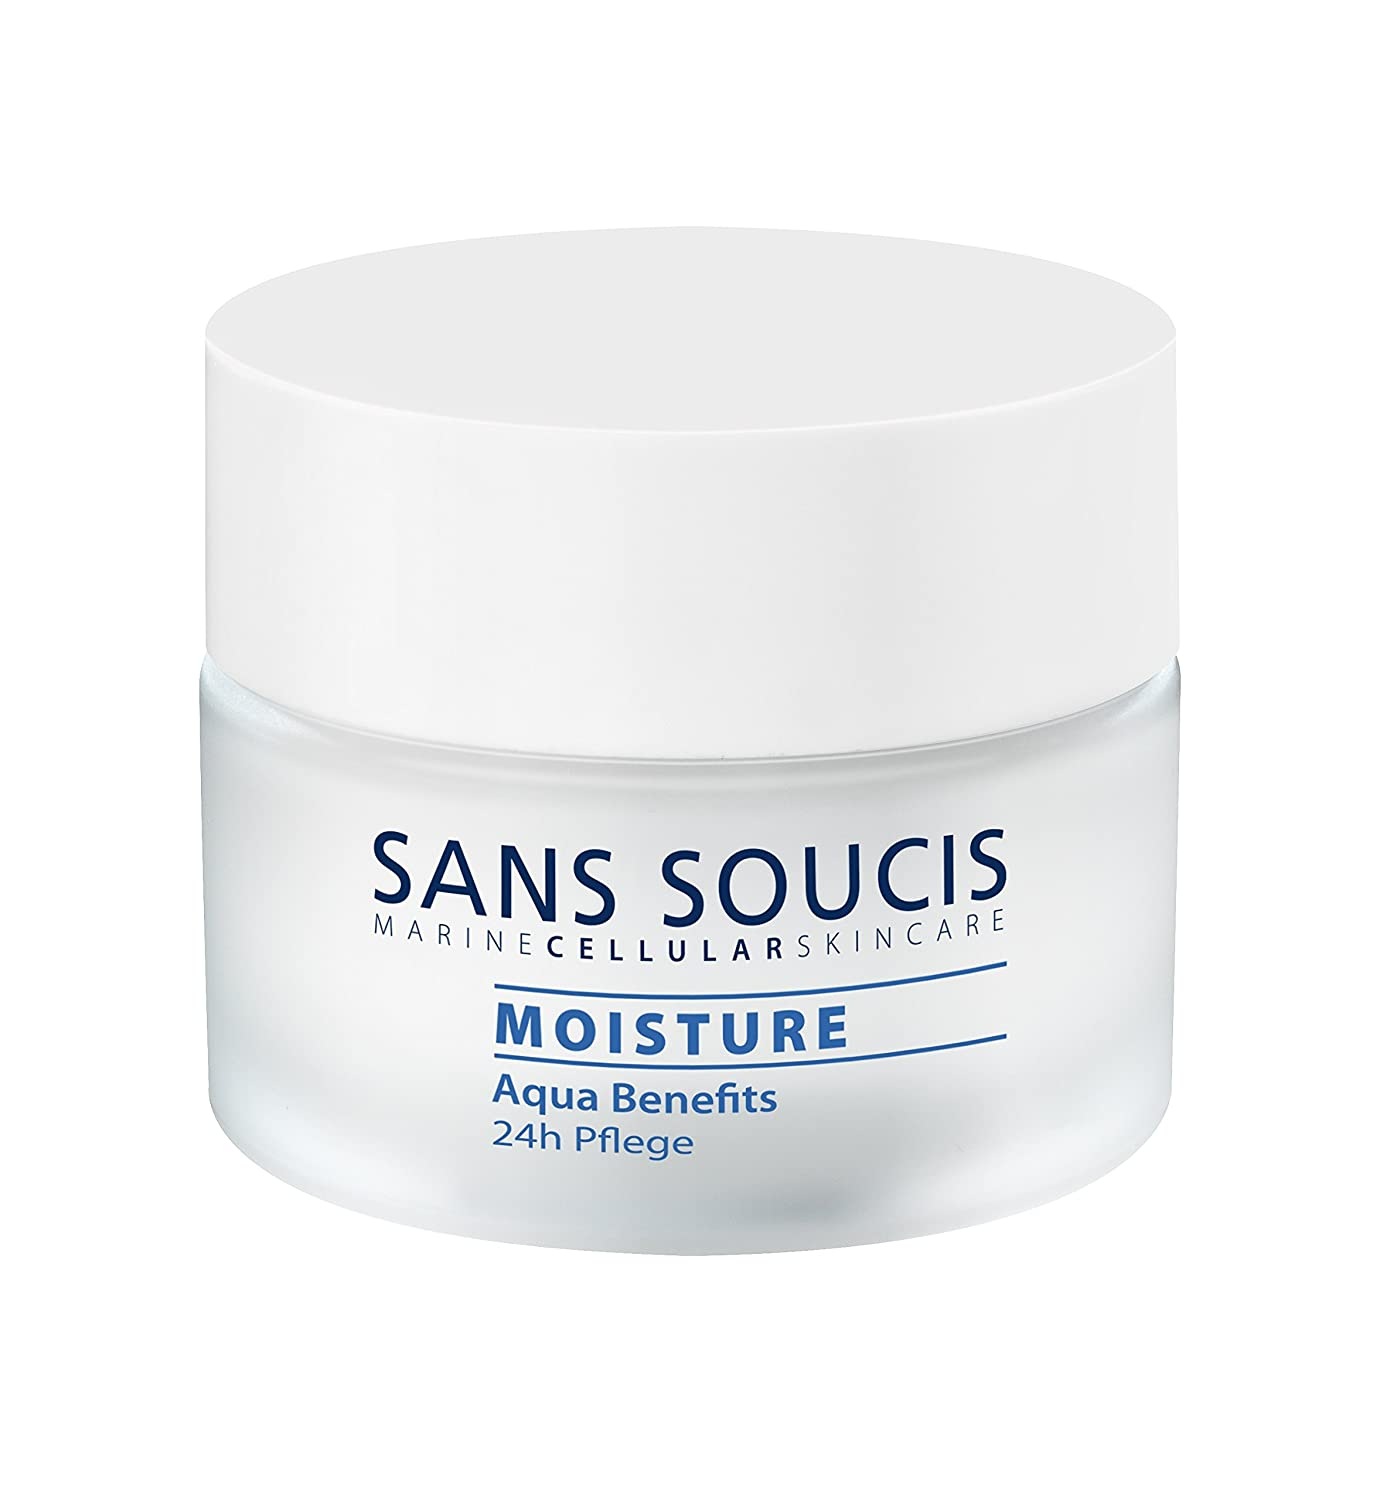 Sans Soucis - Thermal Moist Aqua Benefits - Gel crème Extra hydratation 24 h - 50 ml 23319